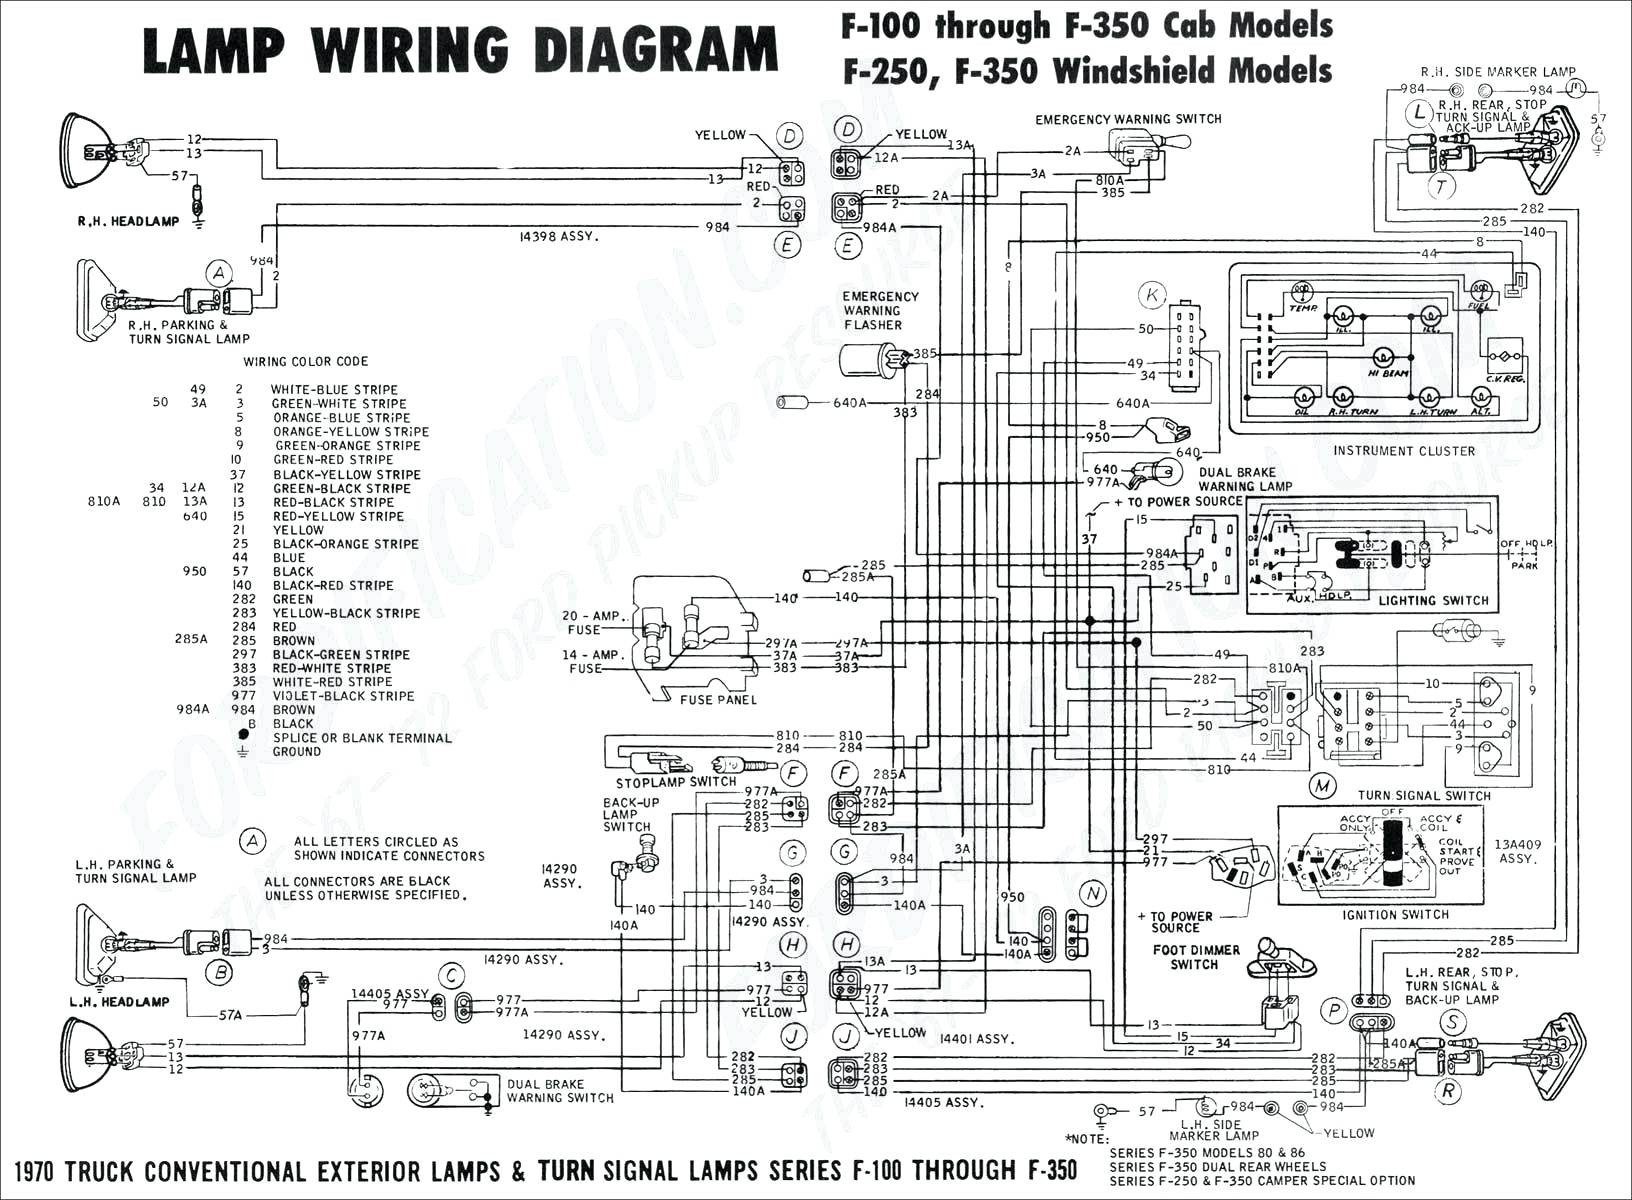 2005 Ford F 250 Wiring Diagram - Wiring Diagrams Thumbs - 2006 F250 Trailer Wiring Diagram